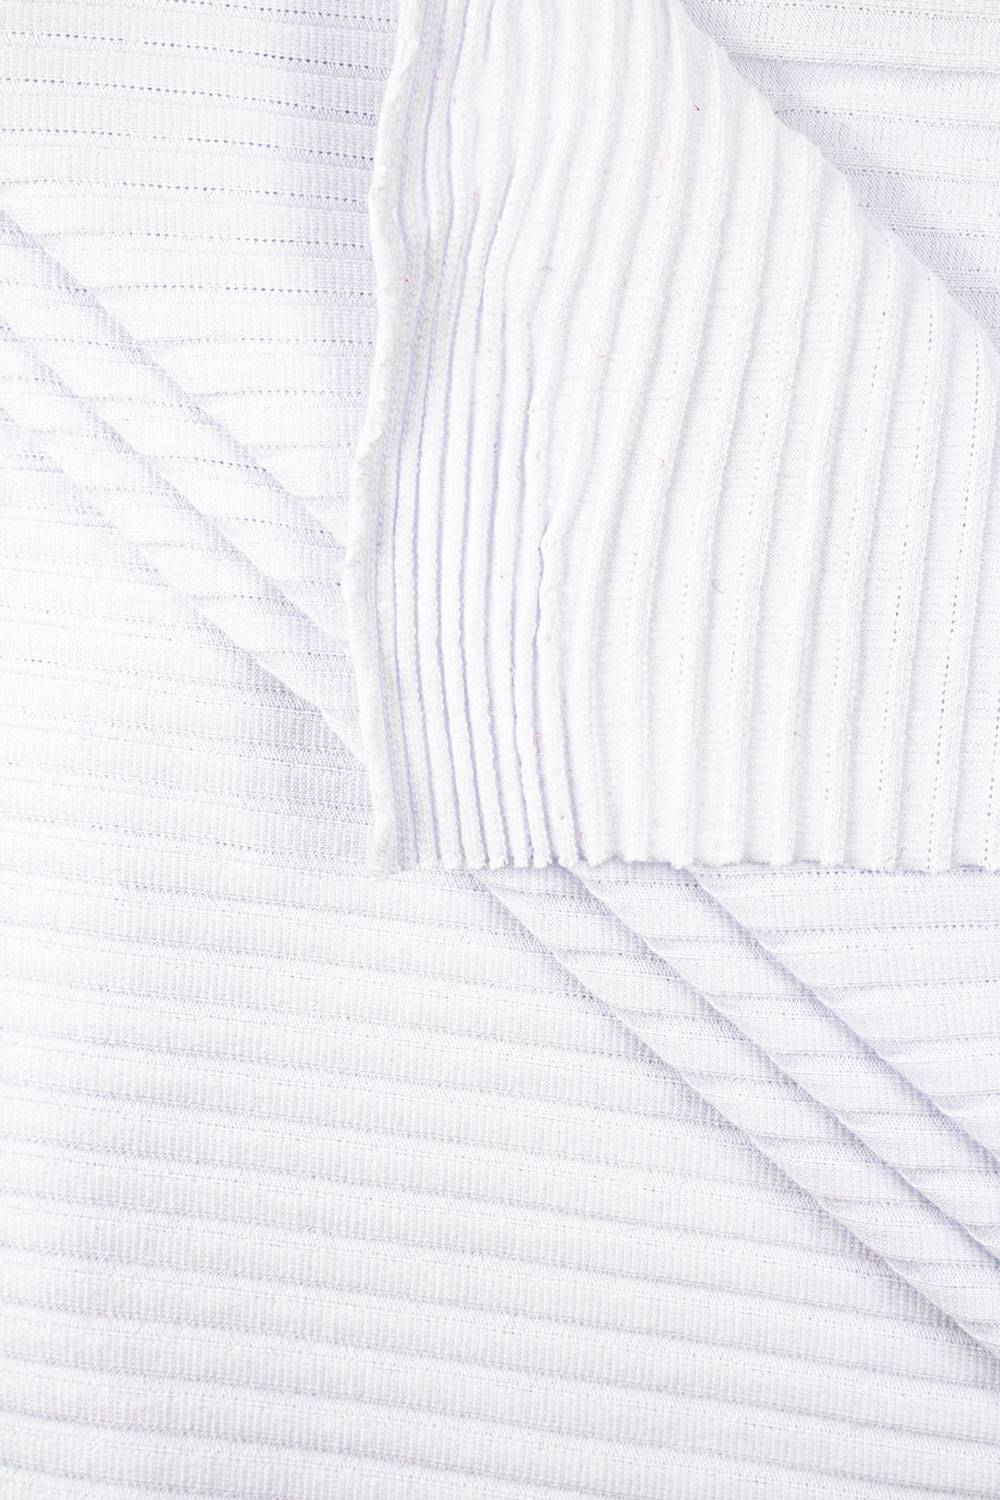 copy of Knit - Jersey - Structural - White - 150 cm - 280 g/m2